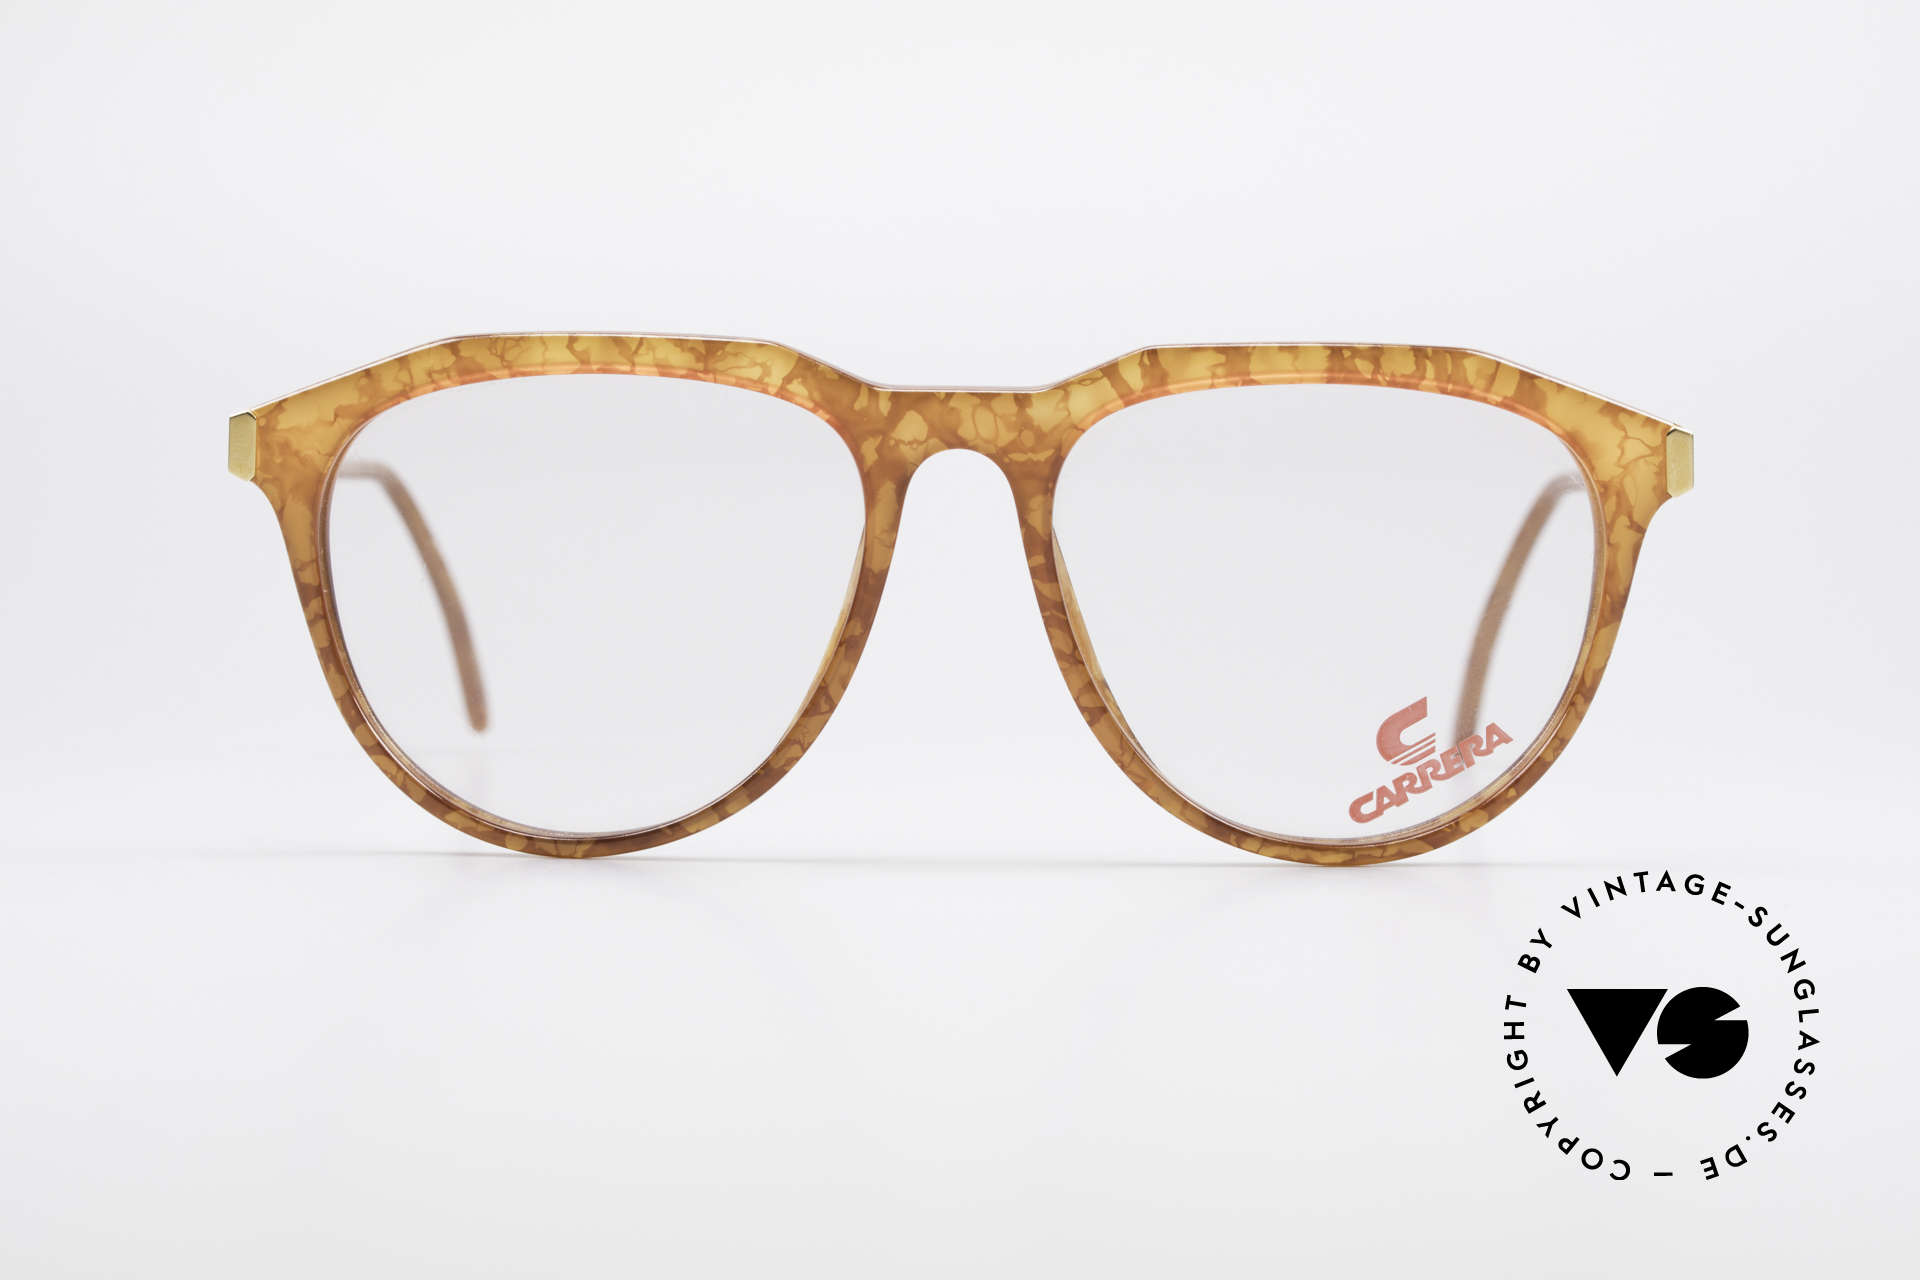 Carrera 5361 90's Panto Eyeglasses Optyl, high-end Optyl material frame; made in Germany, Made for Men